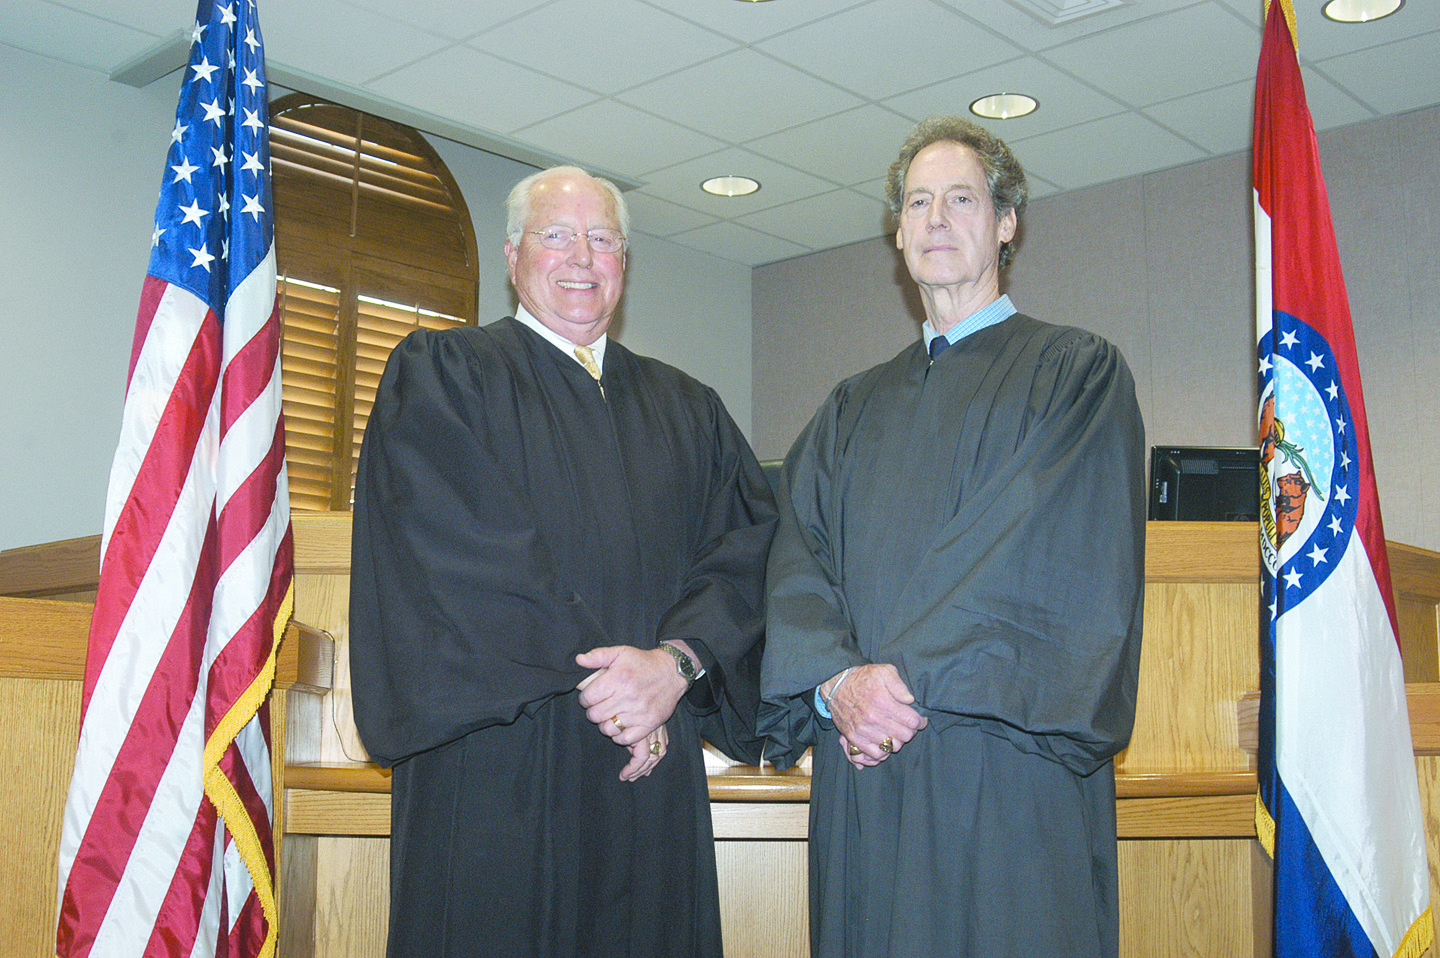 Judges Shafer and Hull